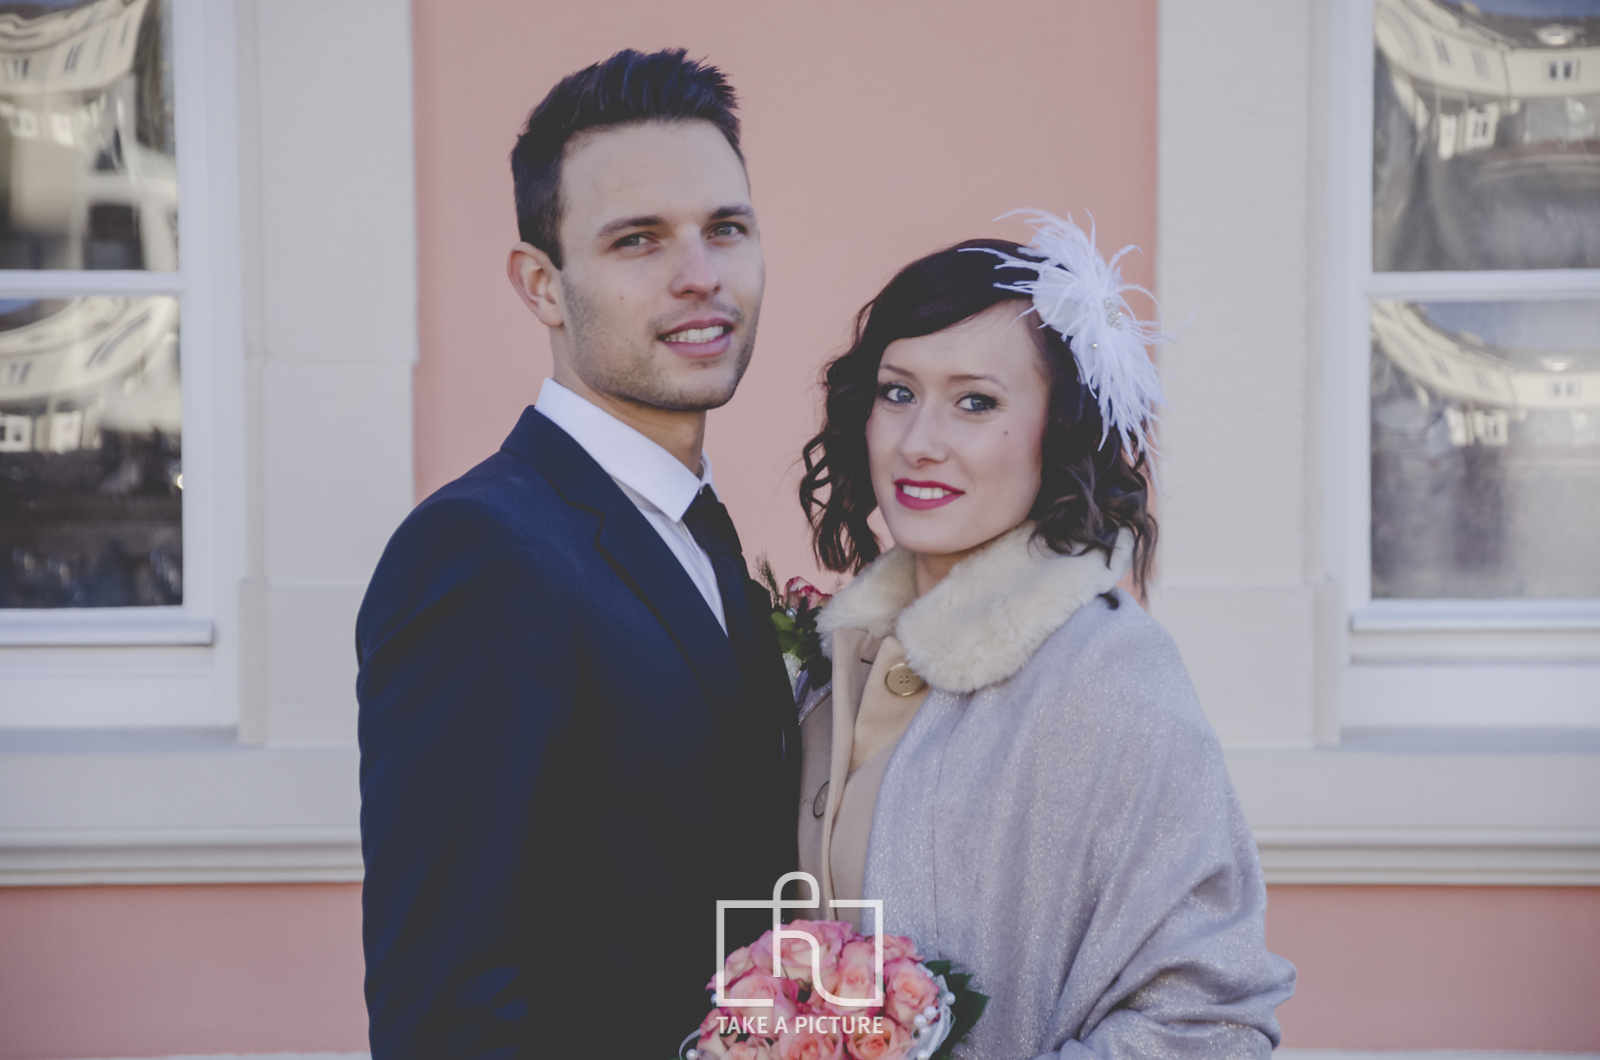 schwäbisch gmünd, lorch, aalen, take a picture, portrait, hochzeit, business, event, fotografie, photography, portraitfotografie, hochzeitfotografie, businessfotografie, eventfotografie, two people, 20-29 years, young adult, bride, ceremony, event, flower, wedding, tradition, people, adult, indoors, facial expression, togetherness, happiness, portrait, real people, horizontal, color image, males, females, photography, pink color, smiling, positive emotion, formalwear, bridegroom, women, clothing, men, domestic room, home interior, love - emotion, lifestyles, bonding, plant, wedding dress, suit, life events, couple - relationship, heterosexual couple, adults only, traditional clothing, single flower, affectionate, youth culture